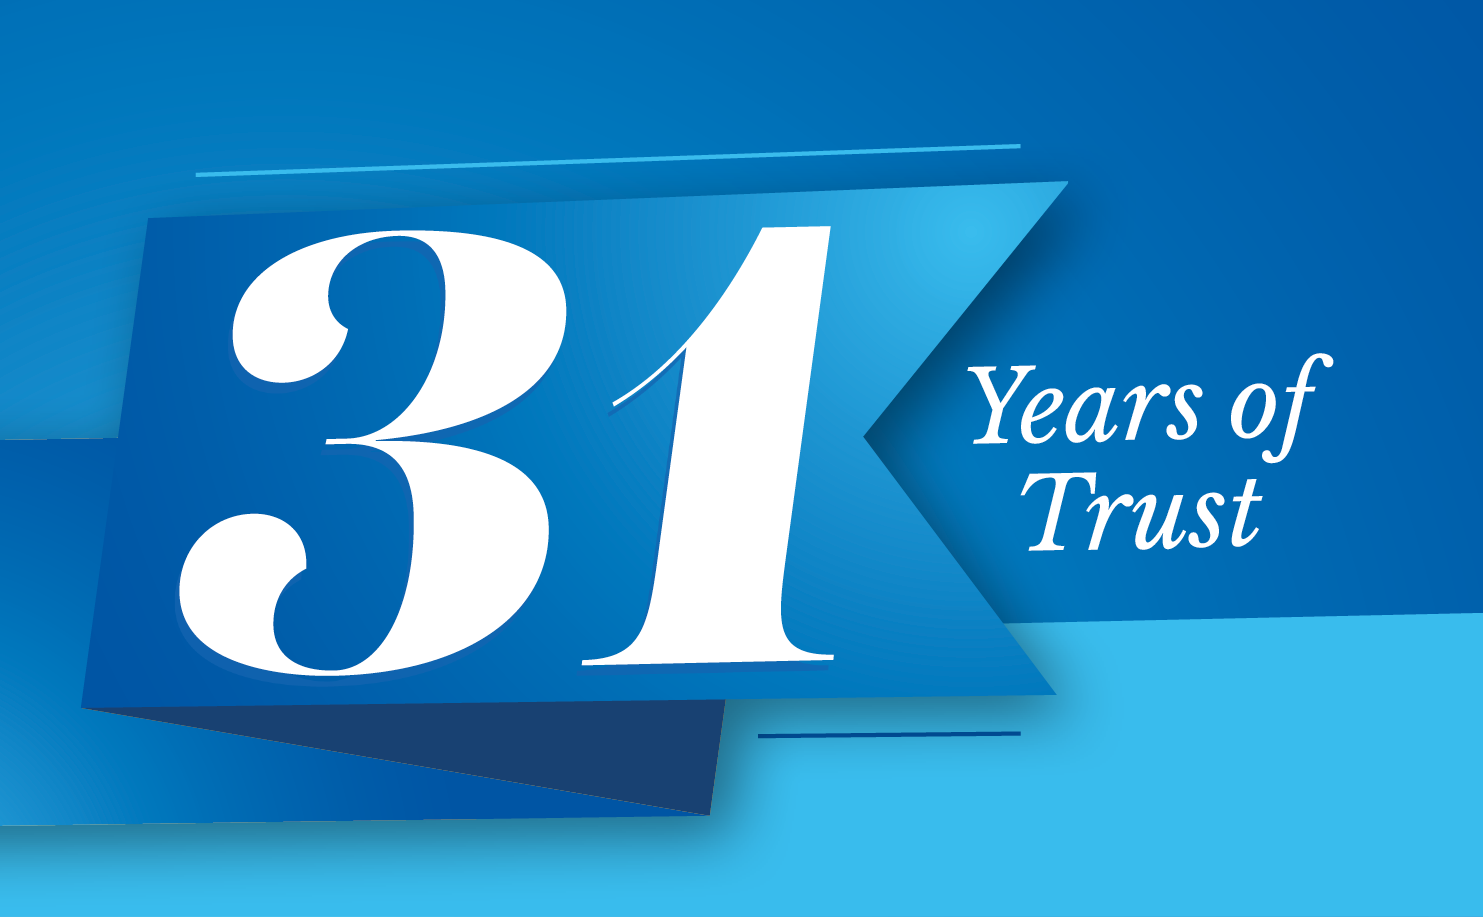 Trust: What We Learned in Our 31st Year